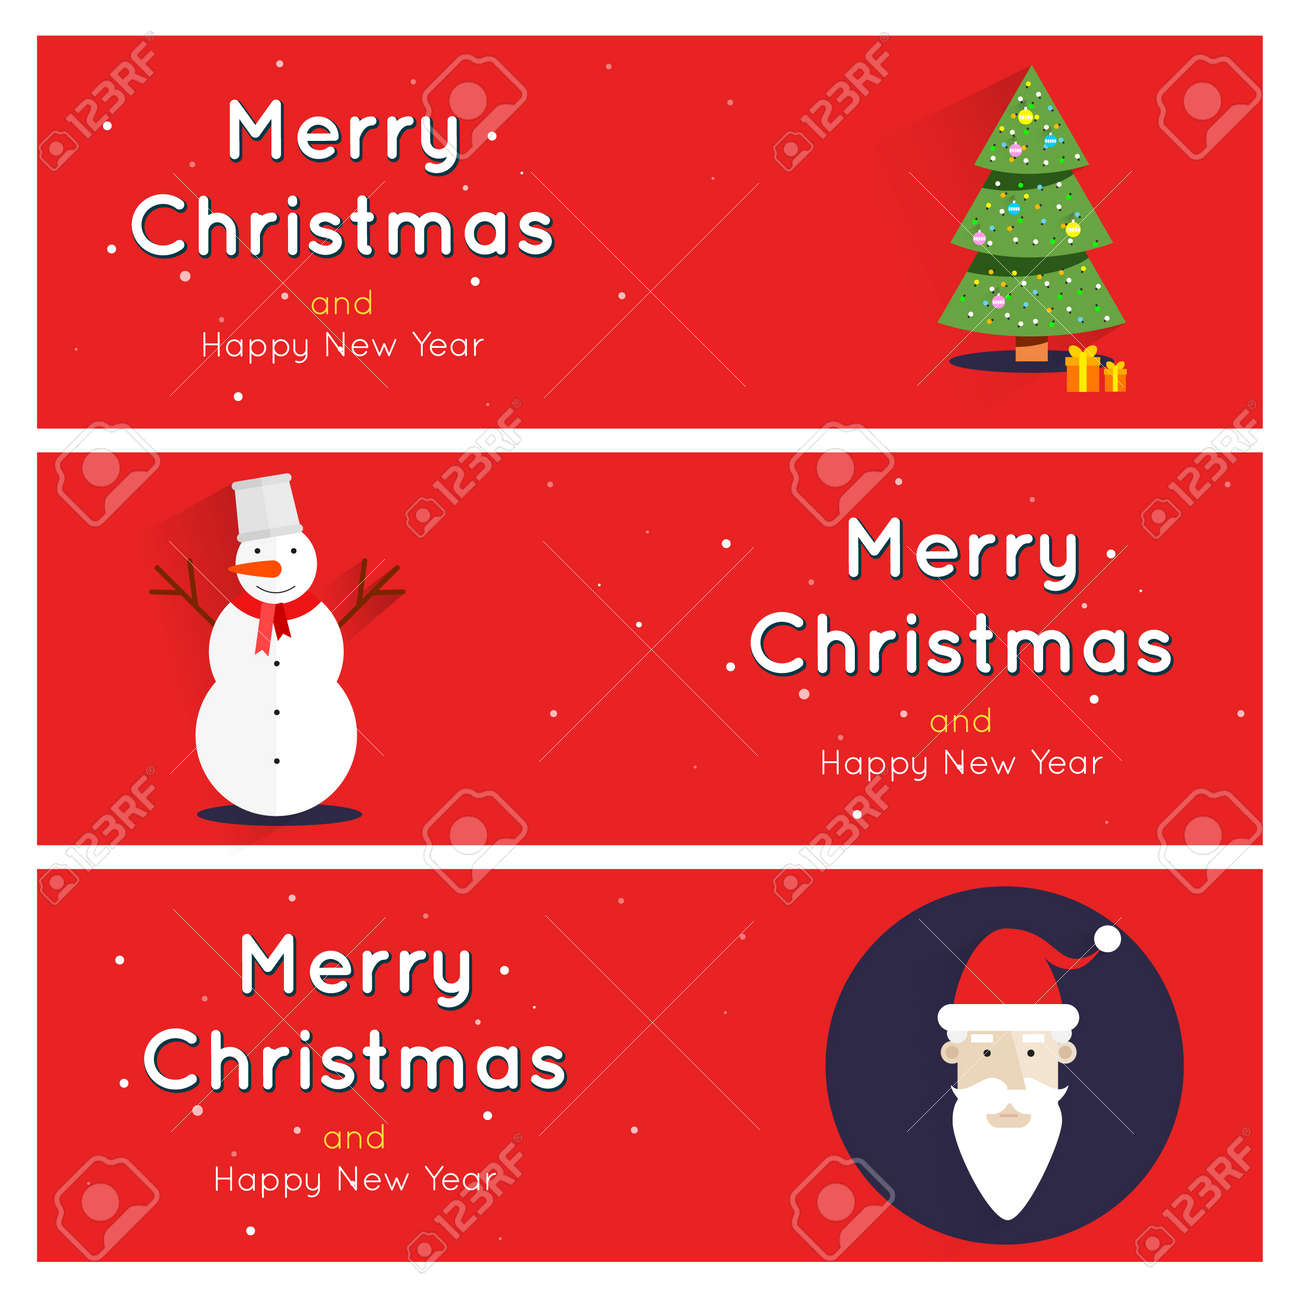 Merry Christmas And Happy New Year Greeting Card Templates Poster – New Year Greeting Card Template